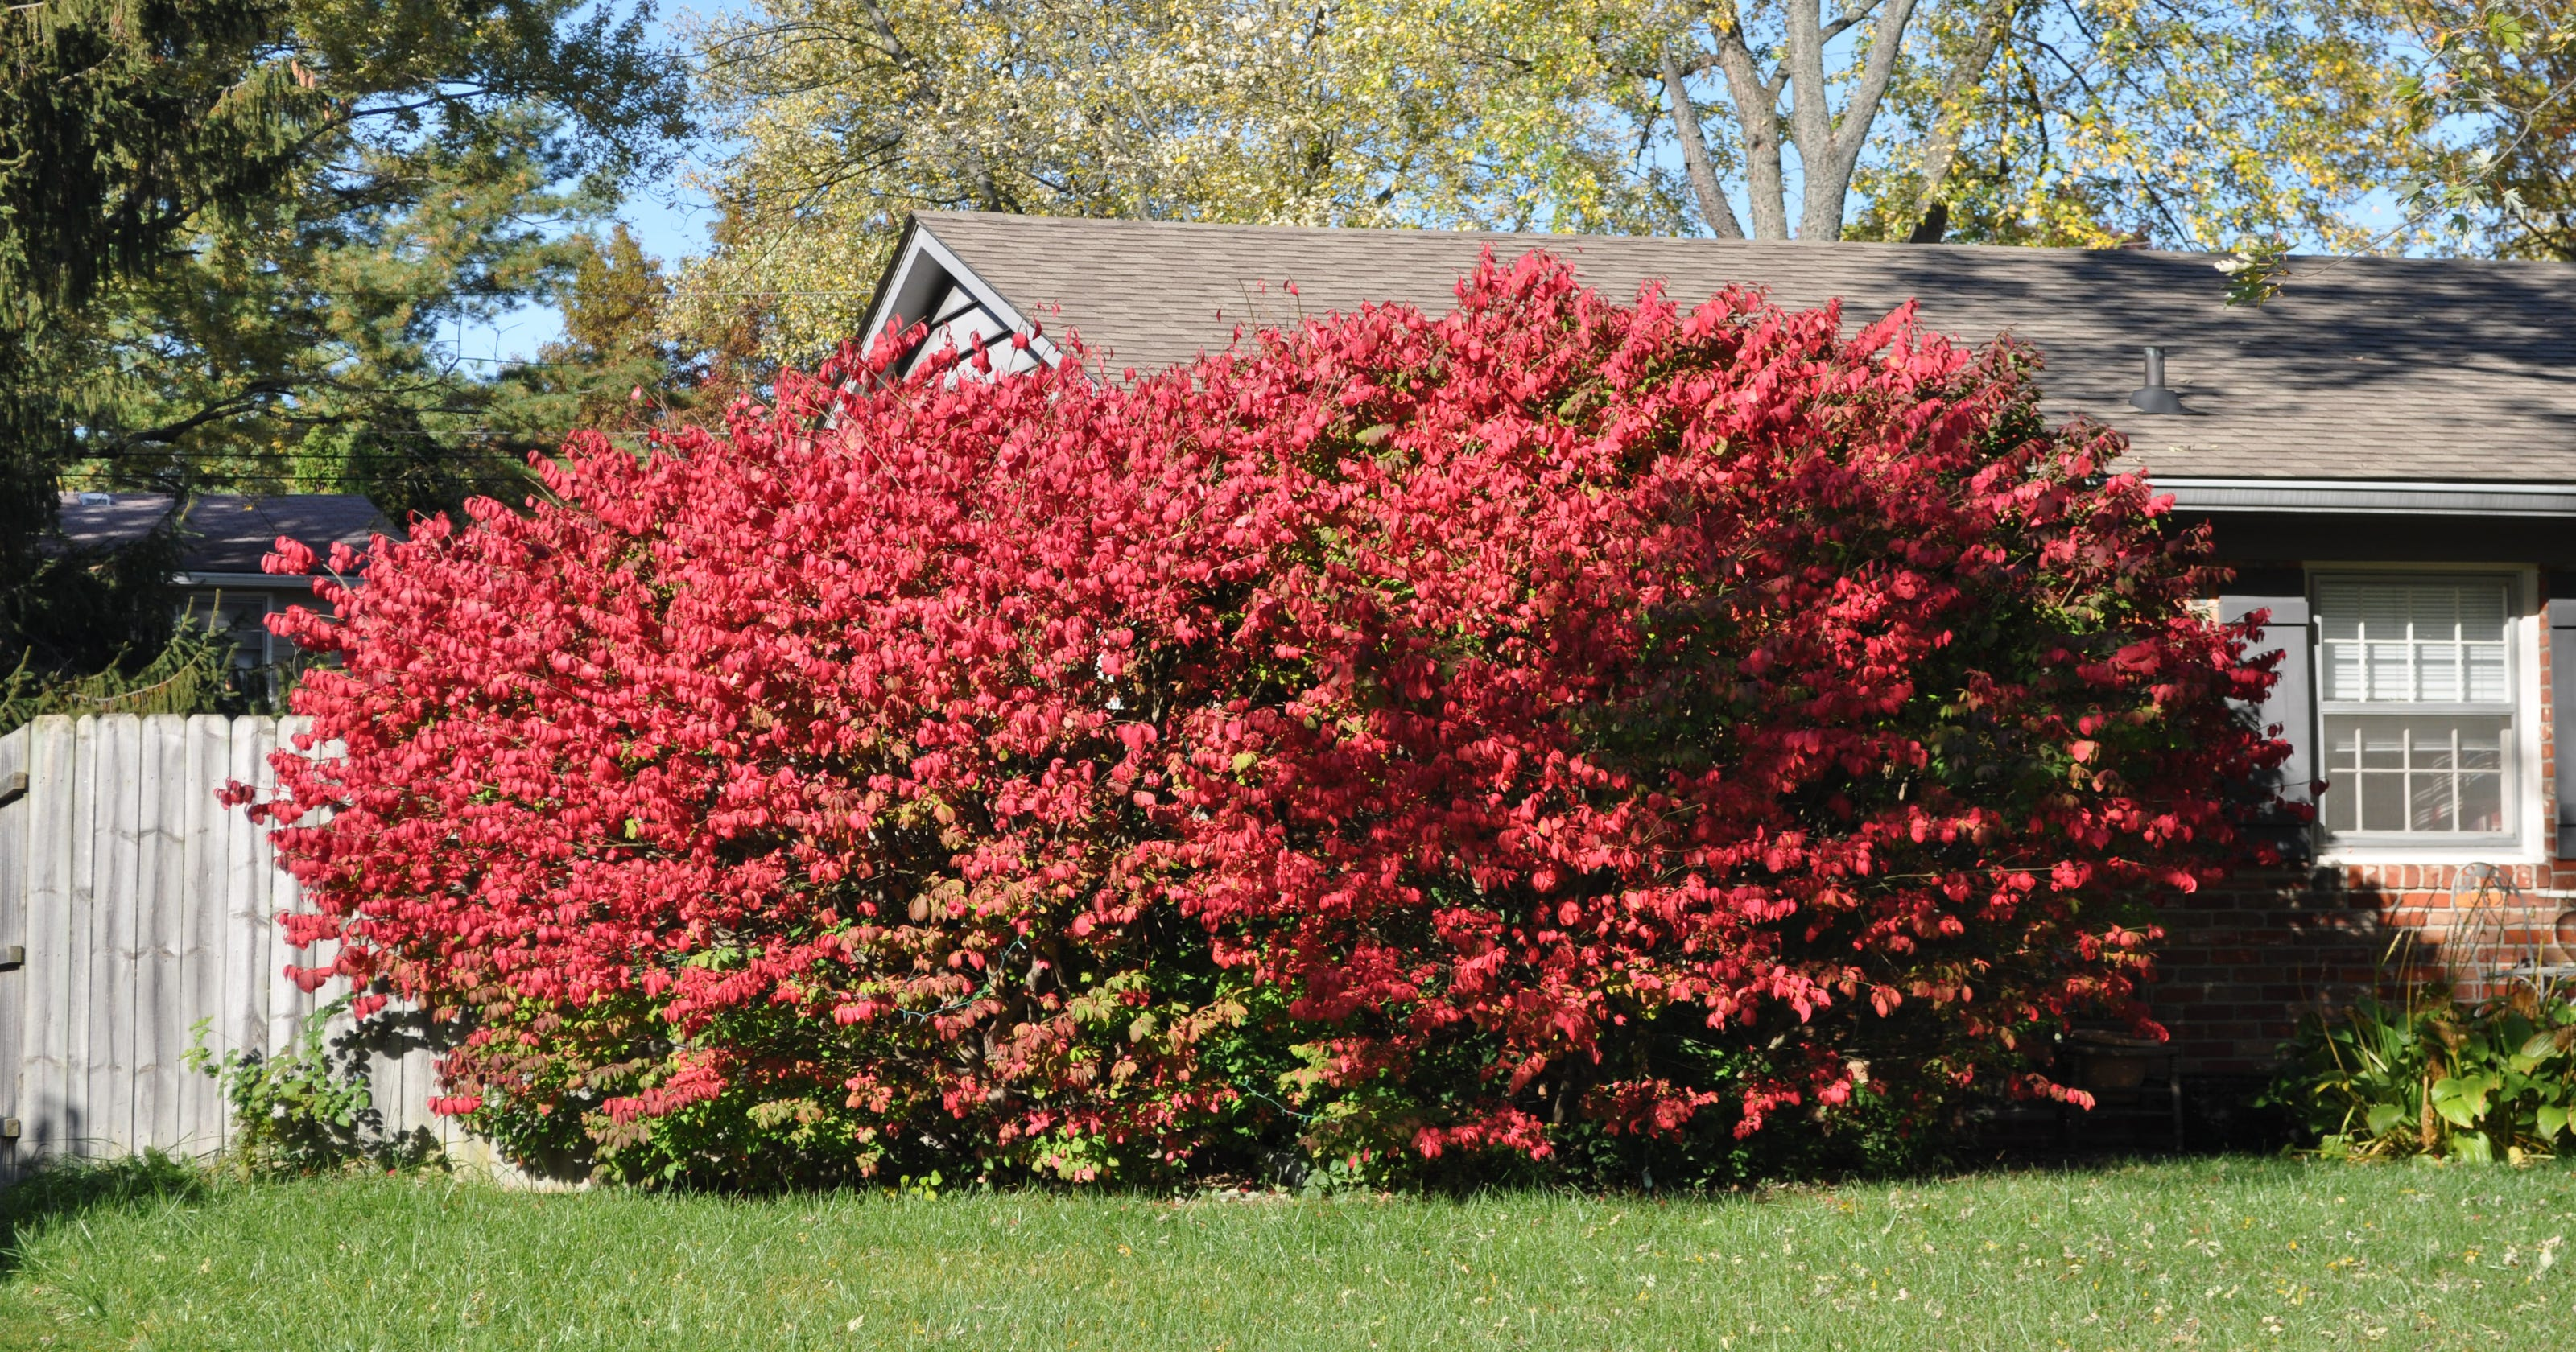 Pruning Will Keep Dwarf Burning Bushes Small